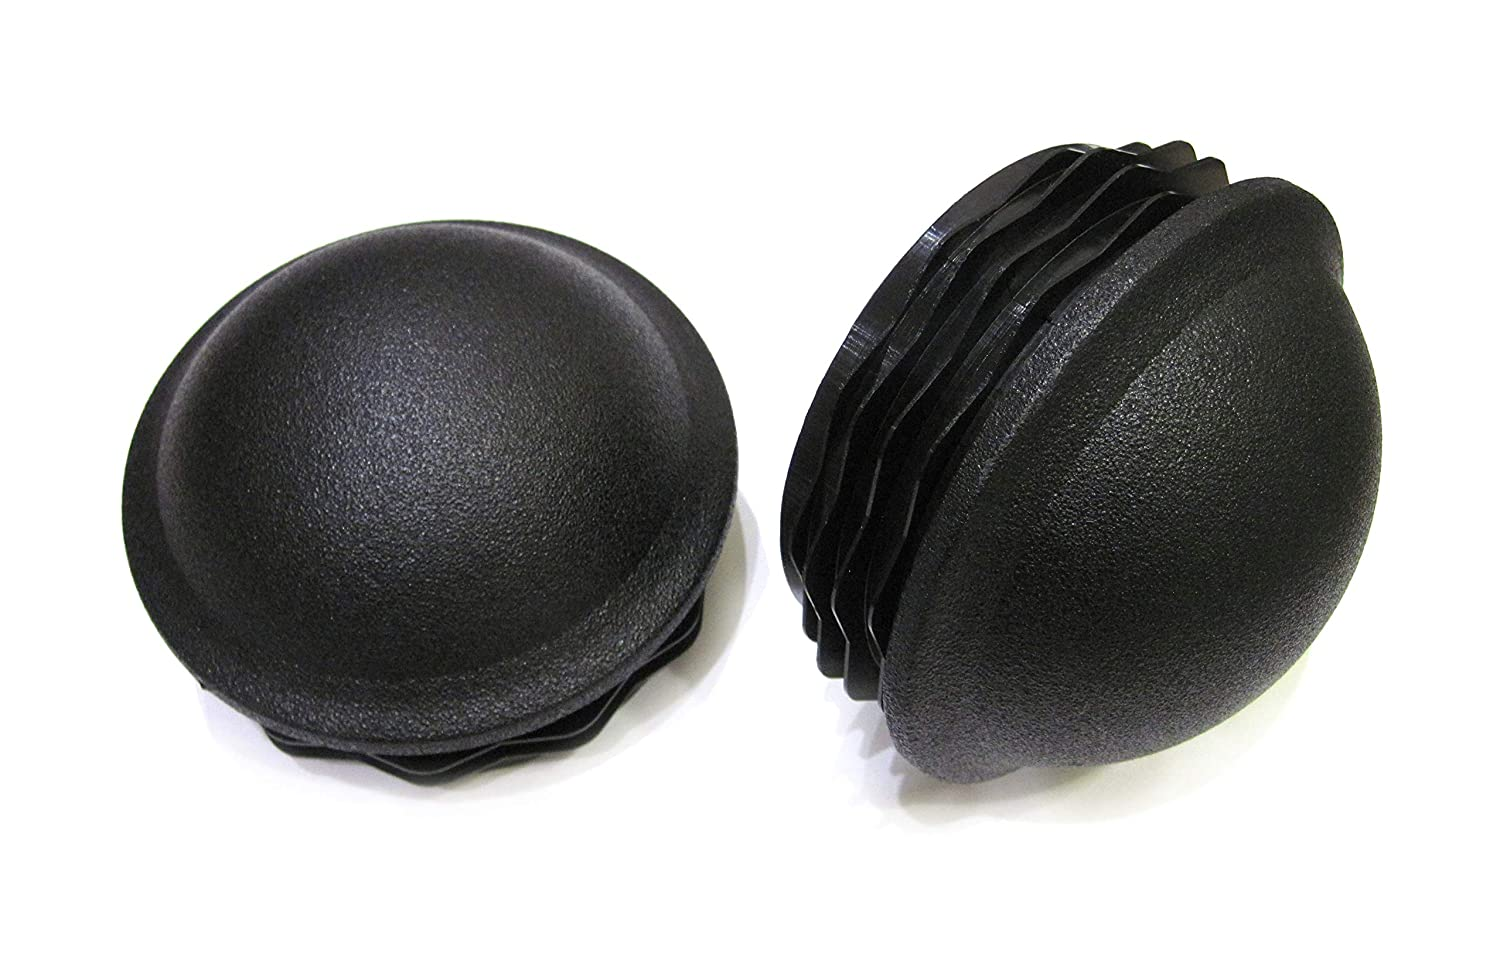 2pcs Pack: 3 1/2 Inch Round Plastic Spherical End Cap (for Hole Size from 3 3/16 to 3 3/8, Including 3 1/4 inches), Dome Shaped Cover for Steel Fence Post, Furniture Finishing Plug (Black)